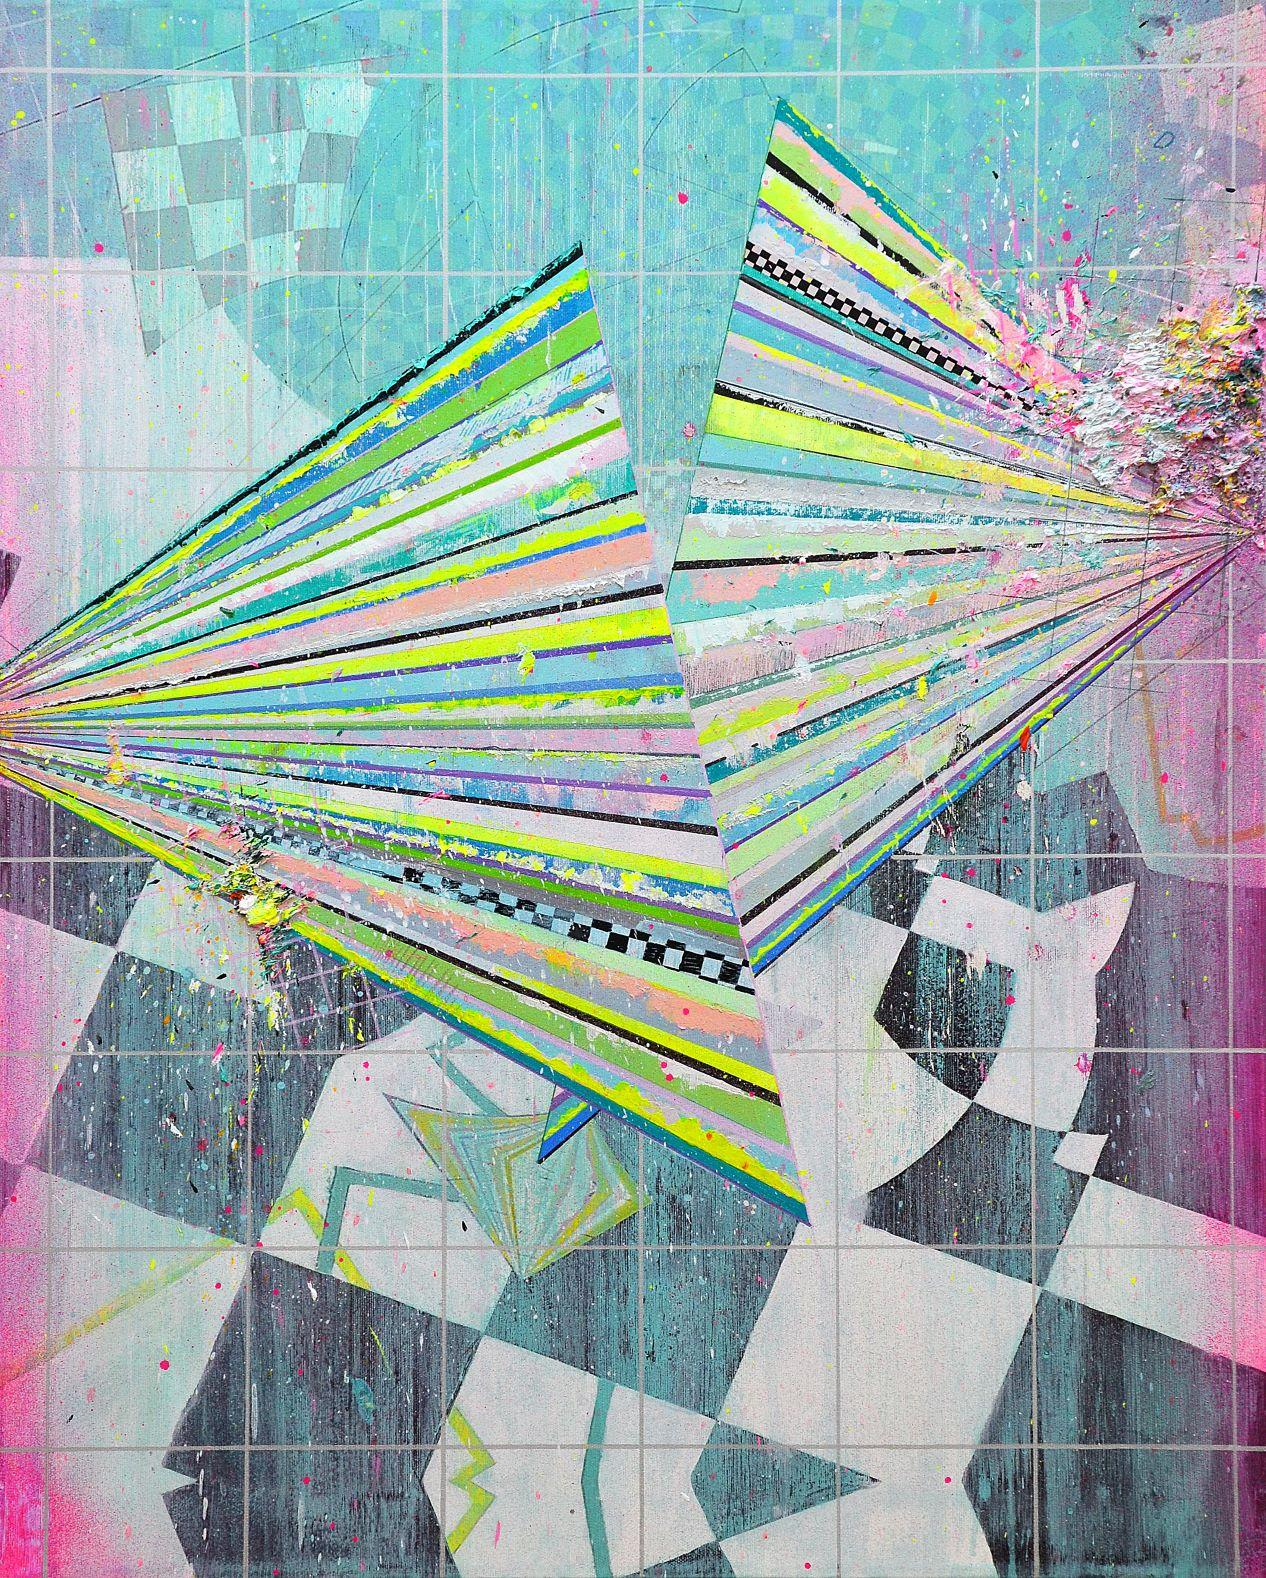 Pantone 1905, Disco - Contemporary Abstract Painting